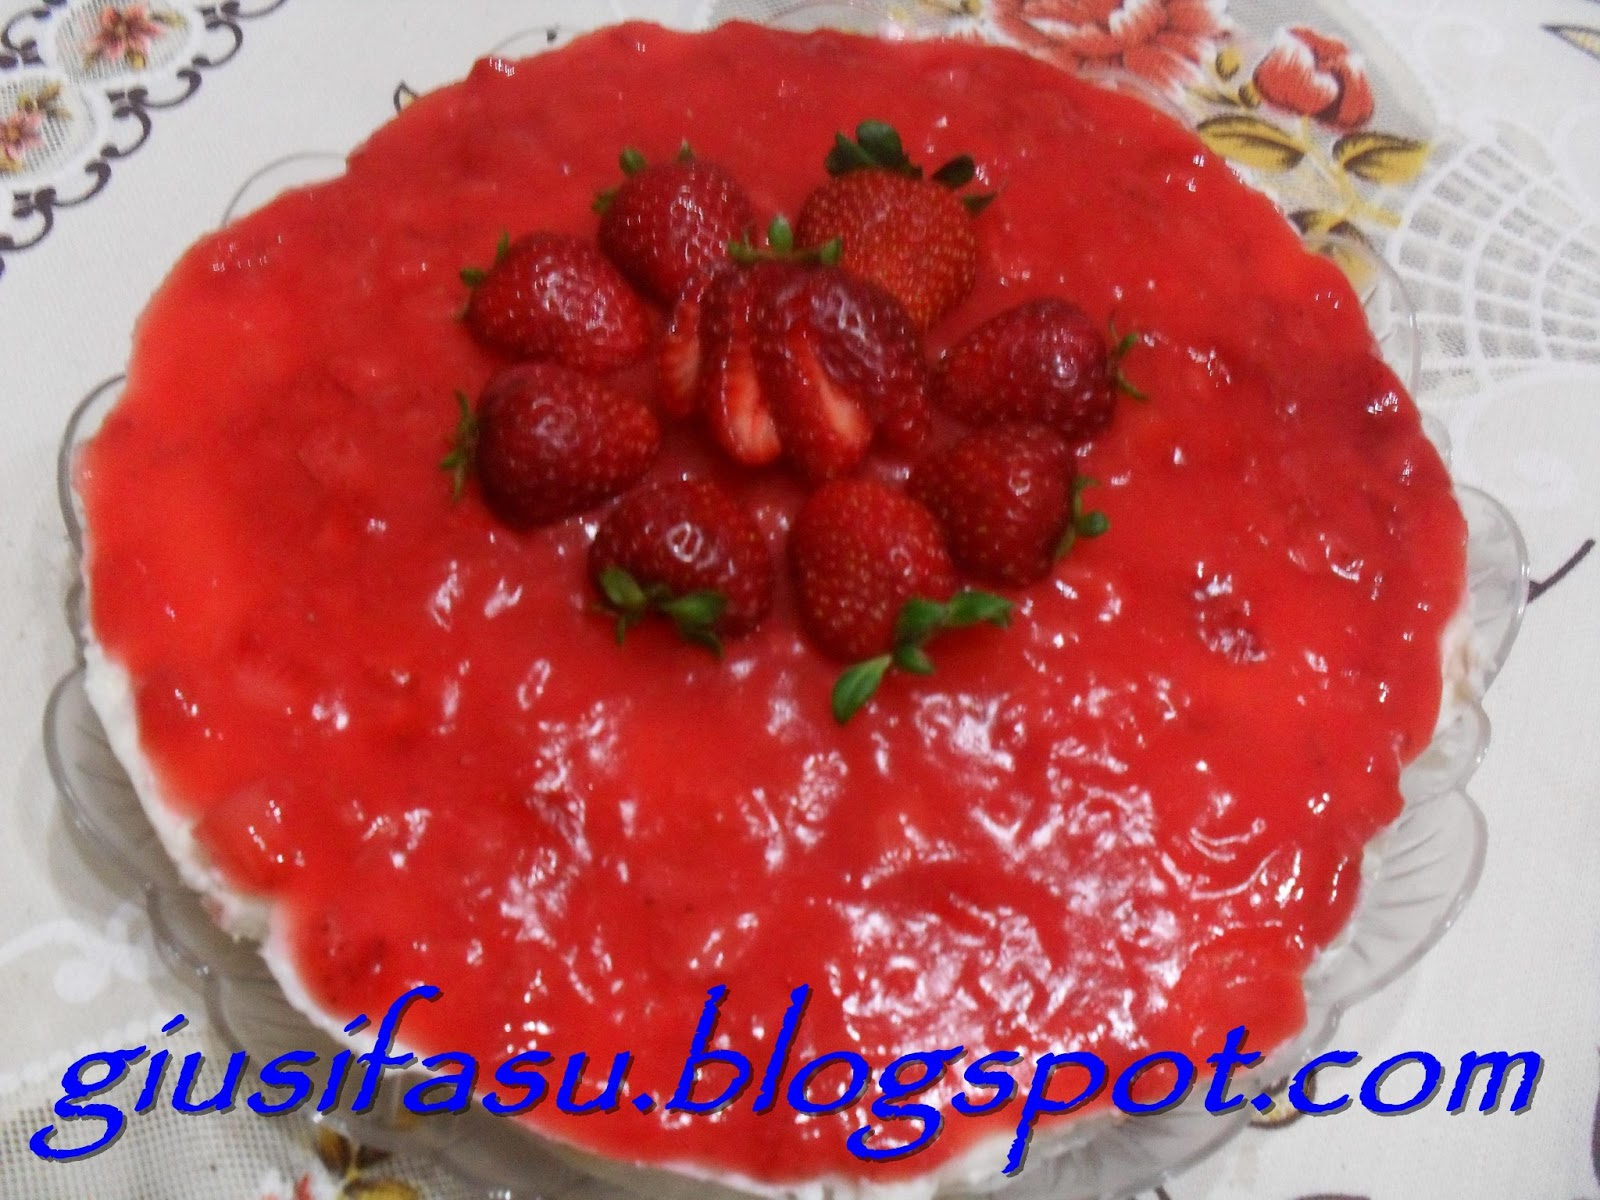 Panna amore e fantasia cheesecake alle fragole for Fragole periodo